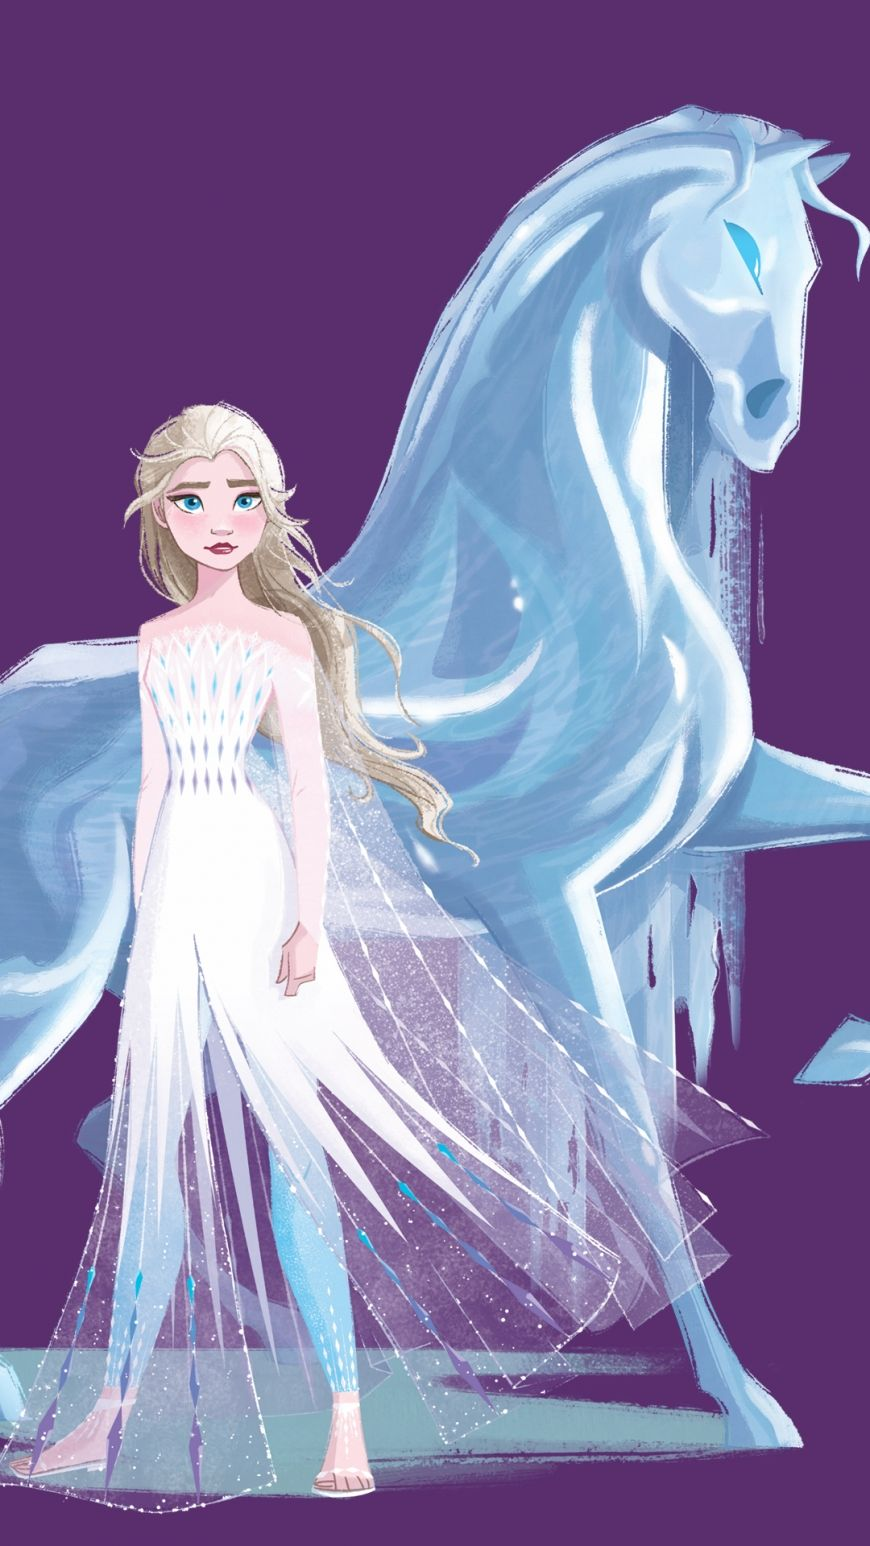 Frozen 2 Hd Background Elsa White Dress Nokk In 2020 Disney Princess Pictures Frozen Art Disney Princess Fashion